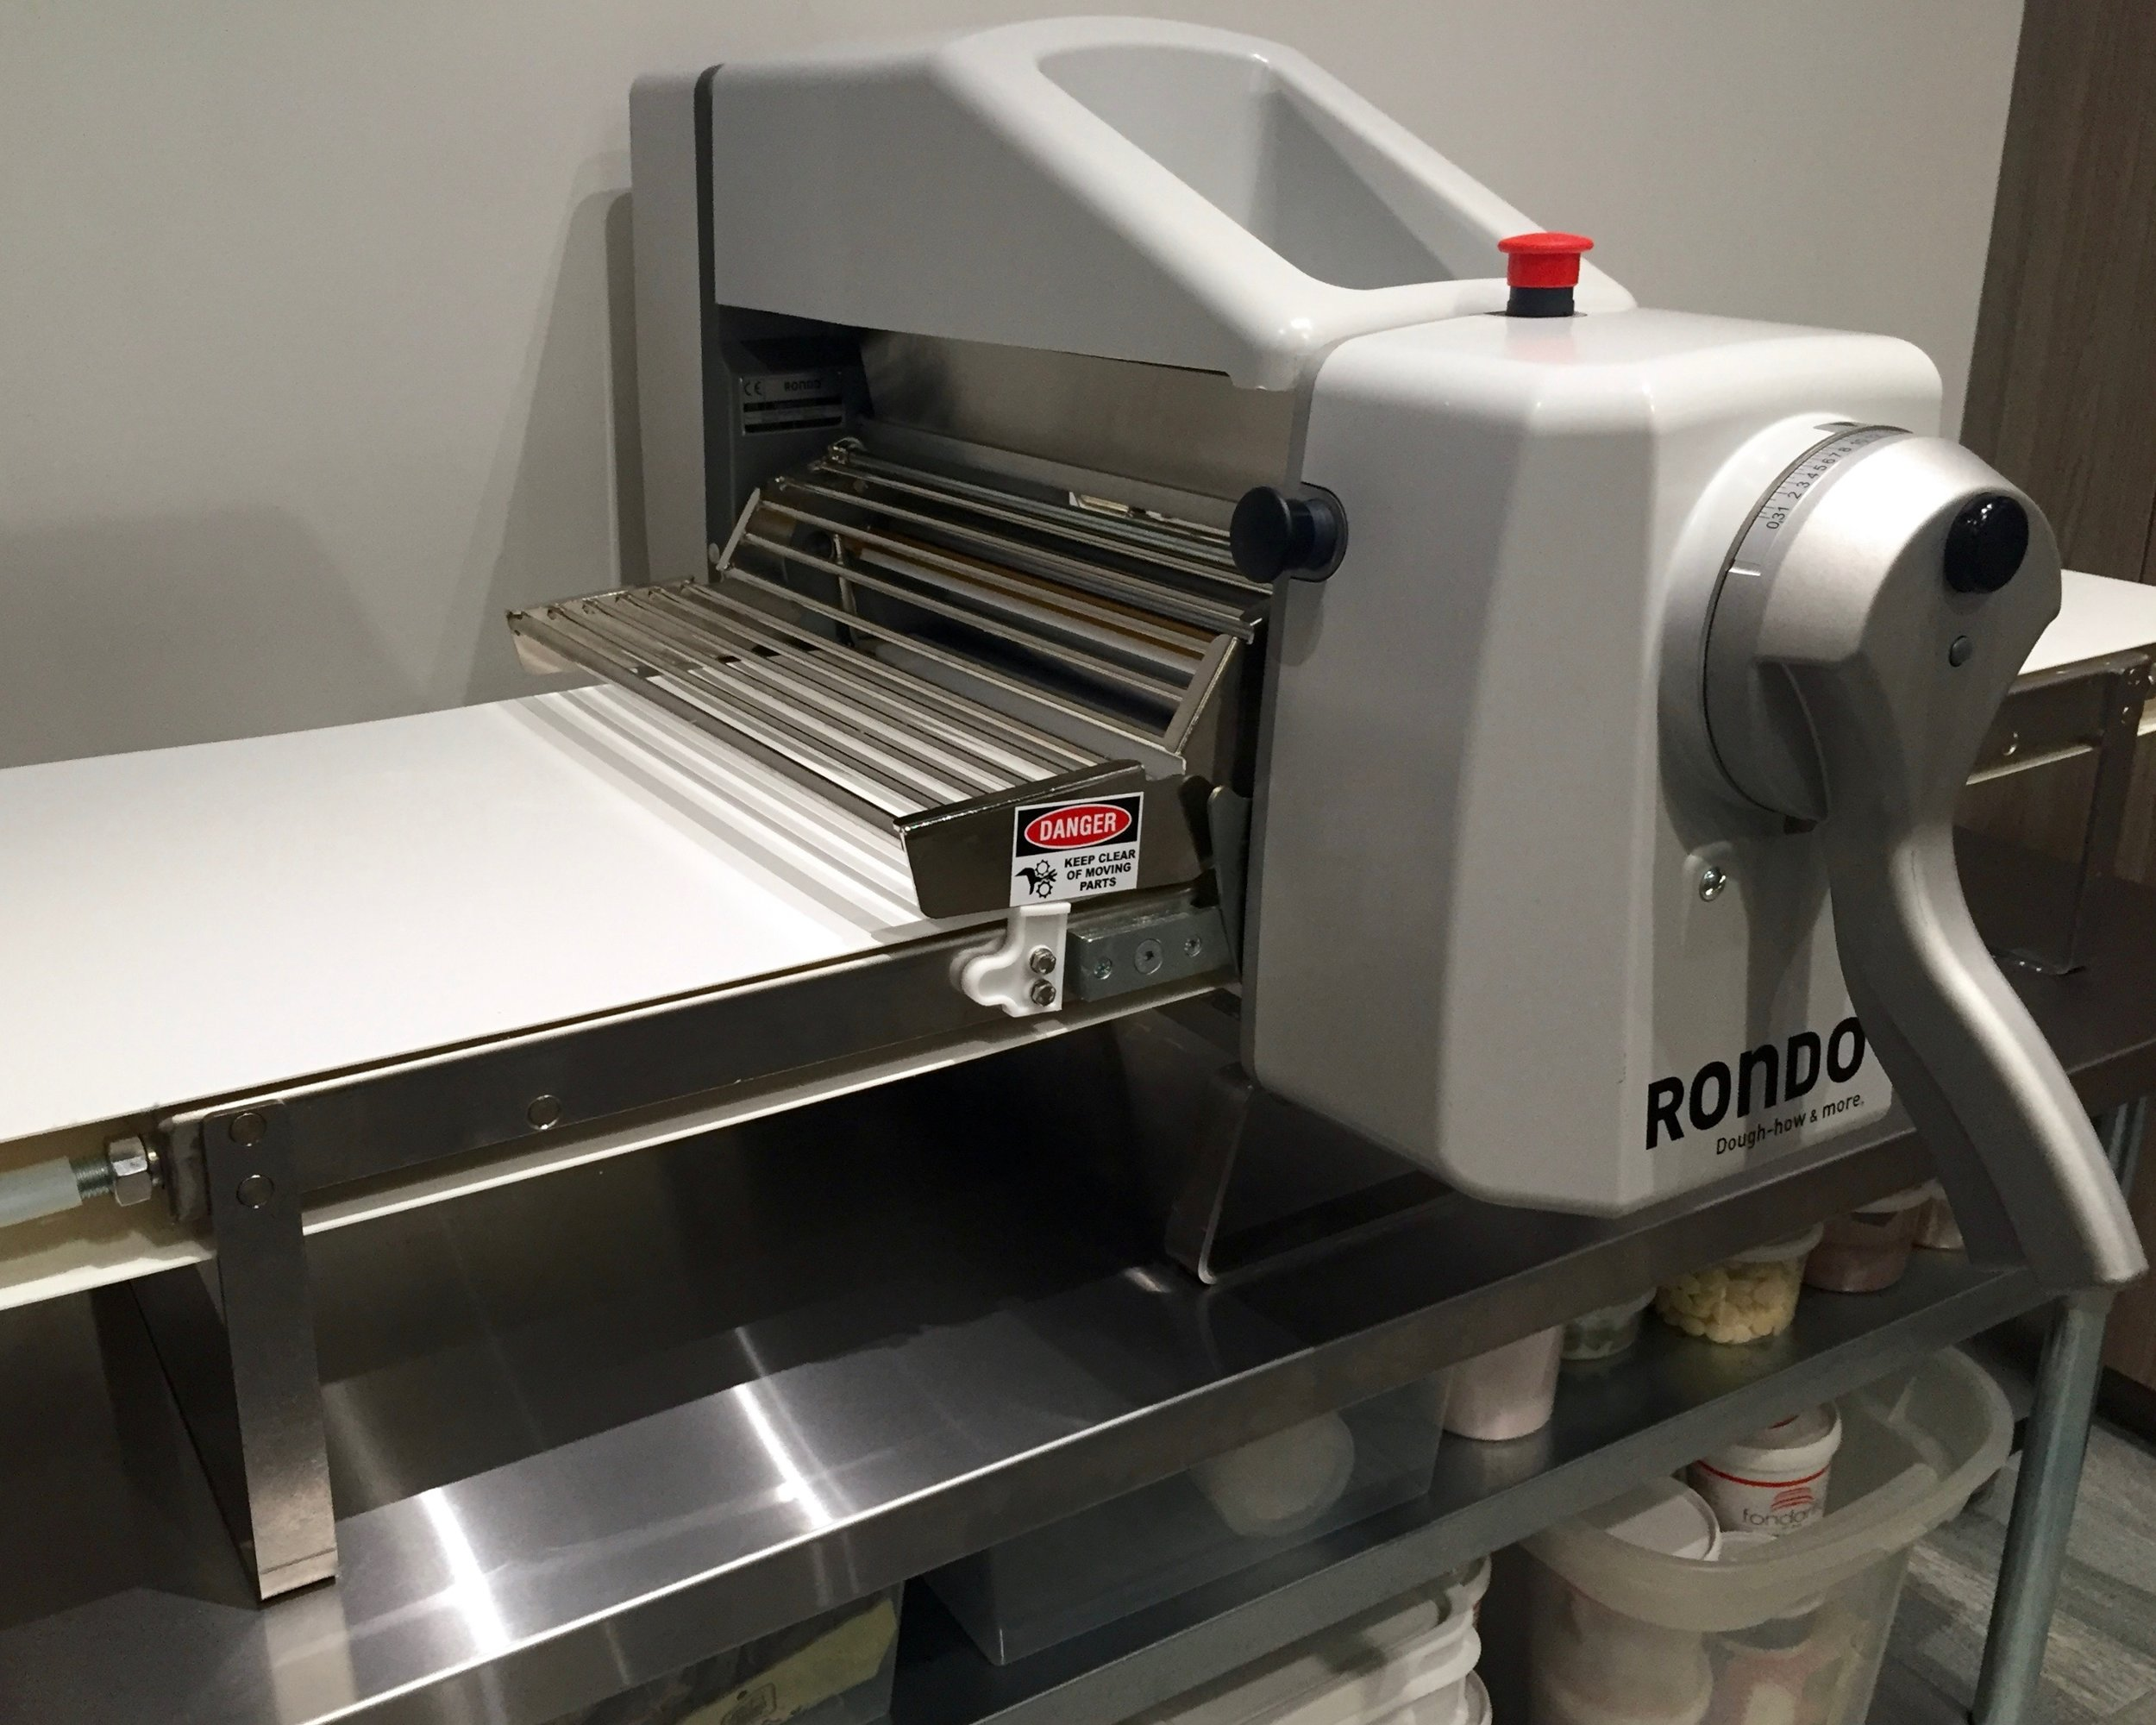 Rondo sheeter in kitchen studio